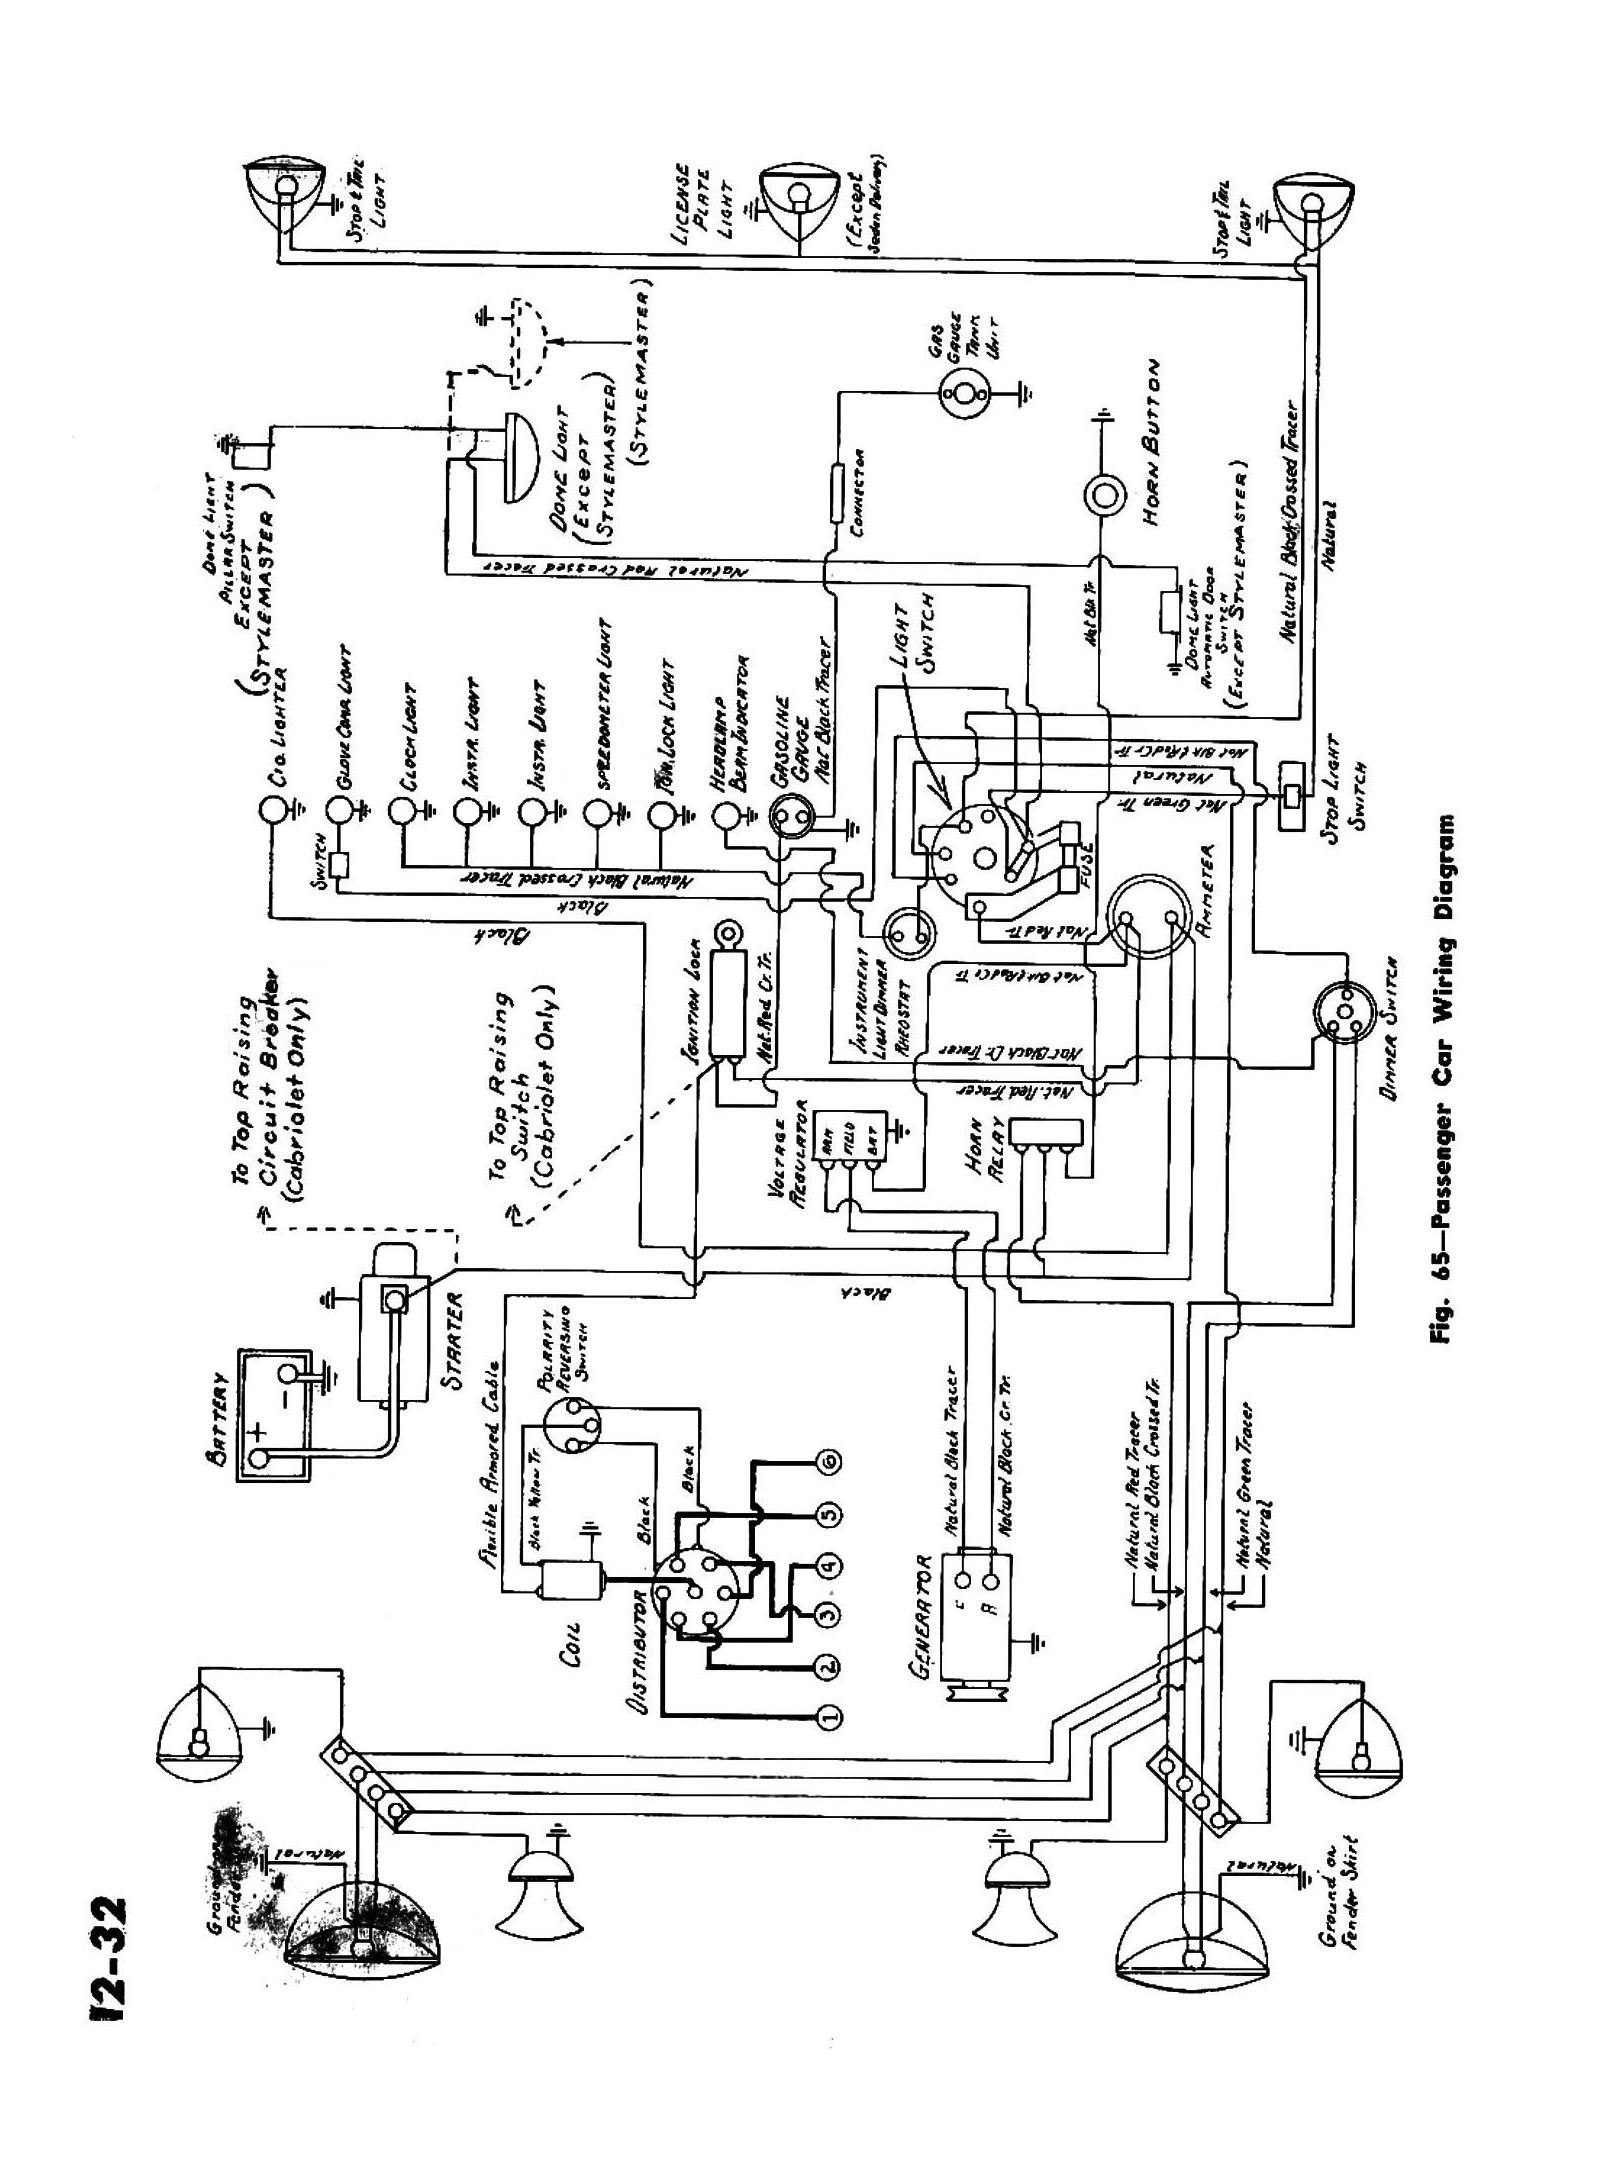 45car chevy wiring diagrams wiring schematics for cars at bayanpartner.co